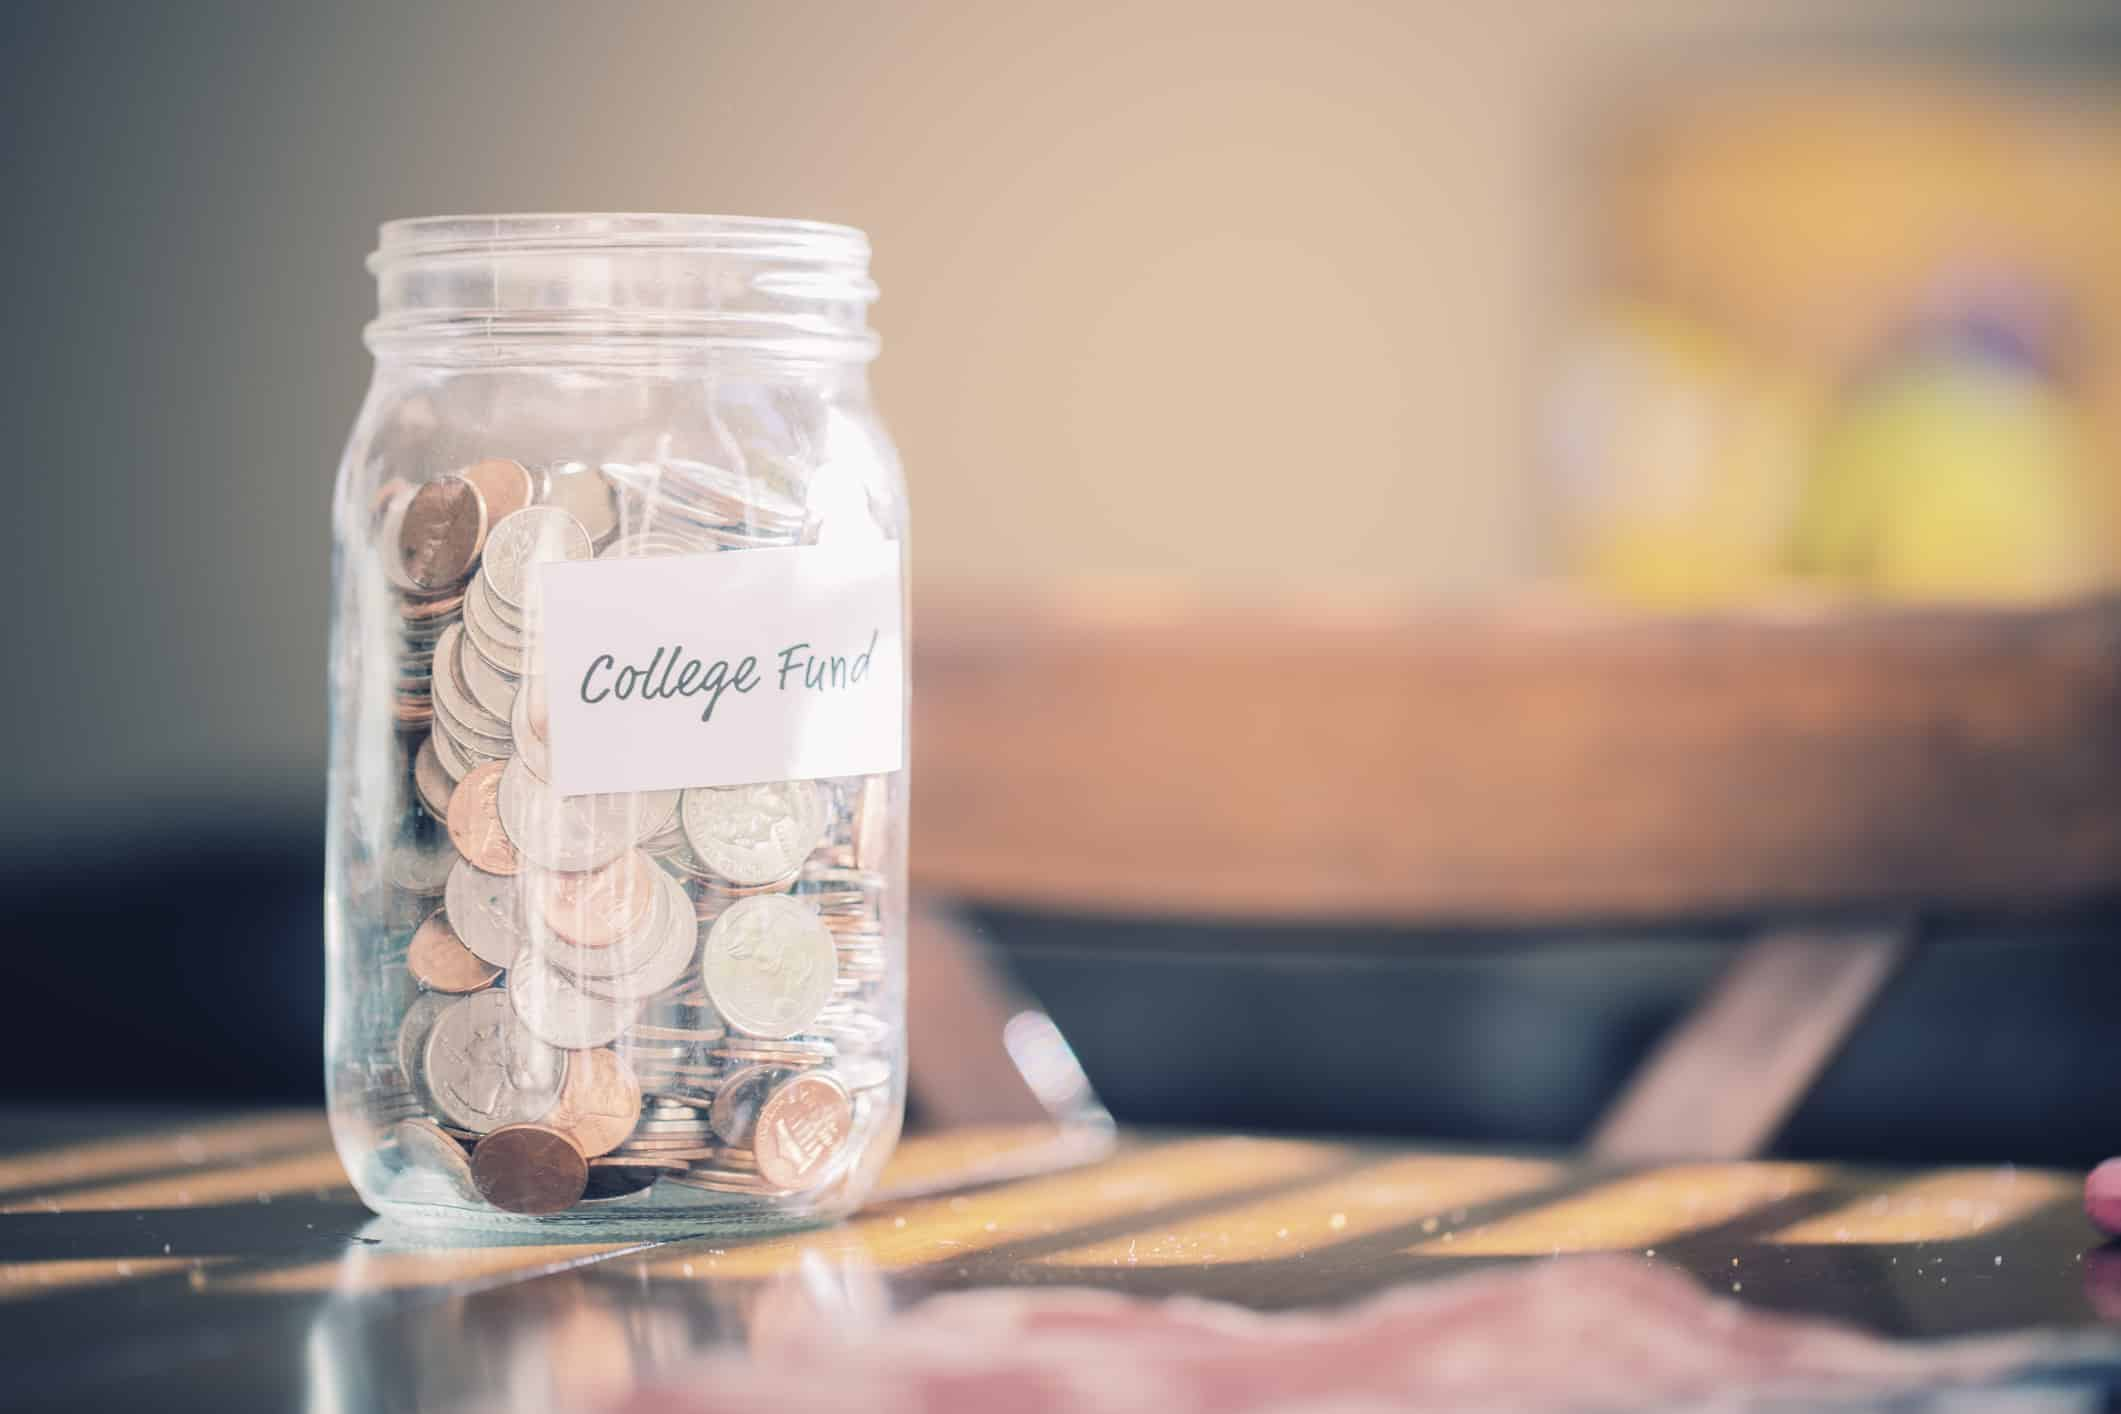 A jar full of change for a college savings fund